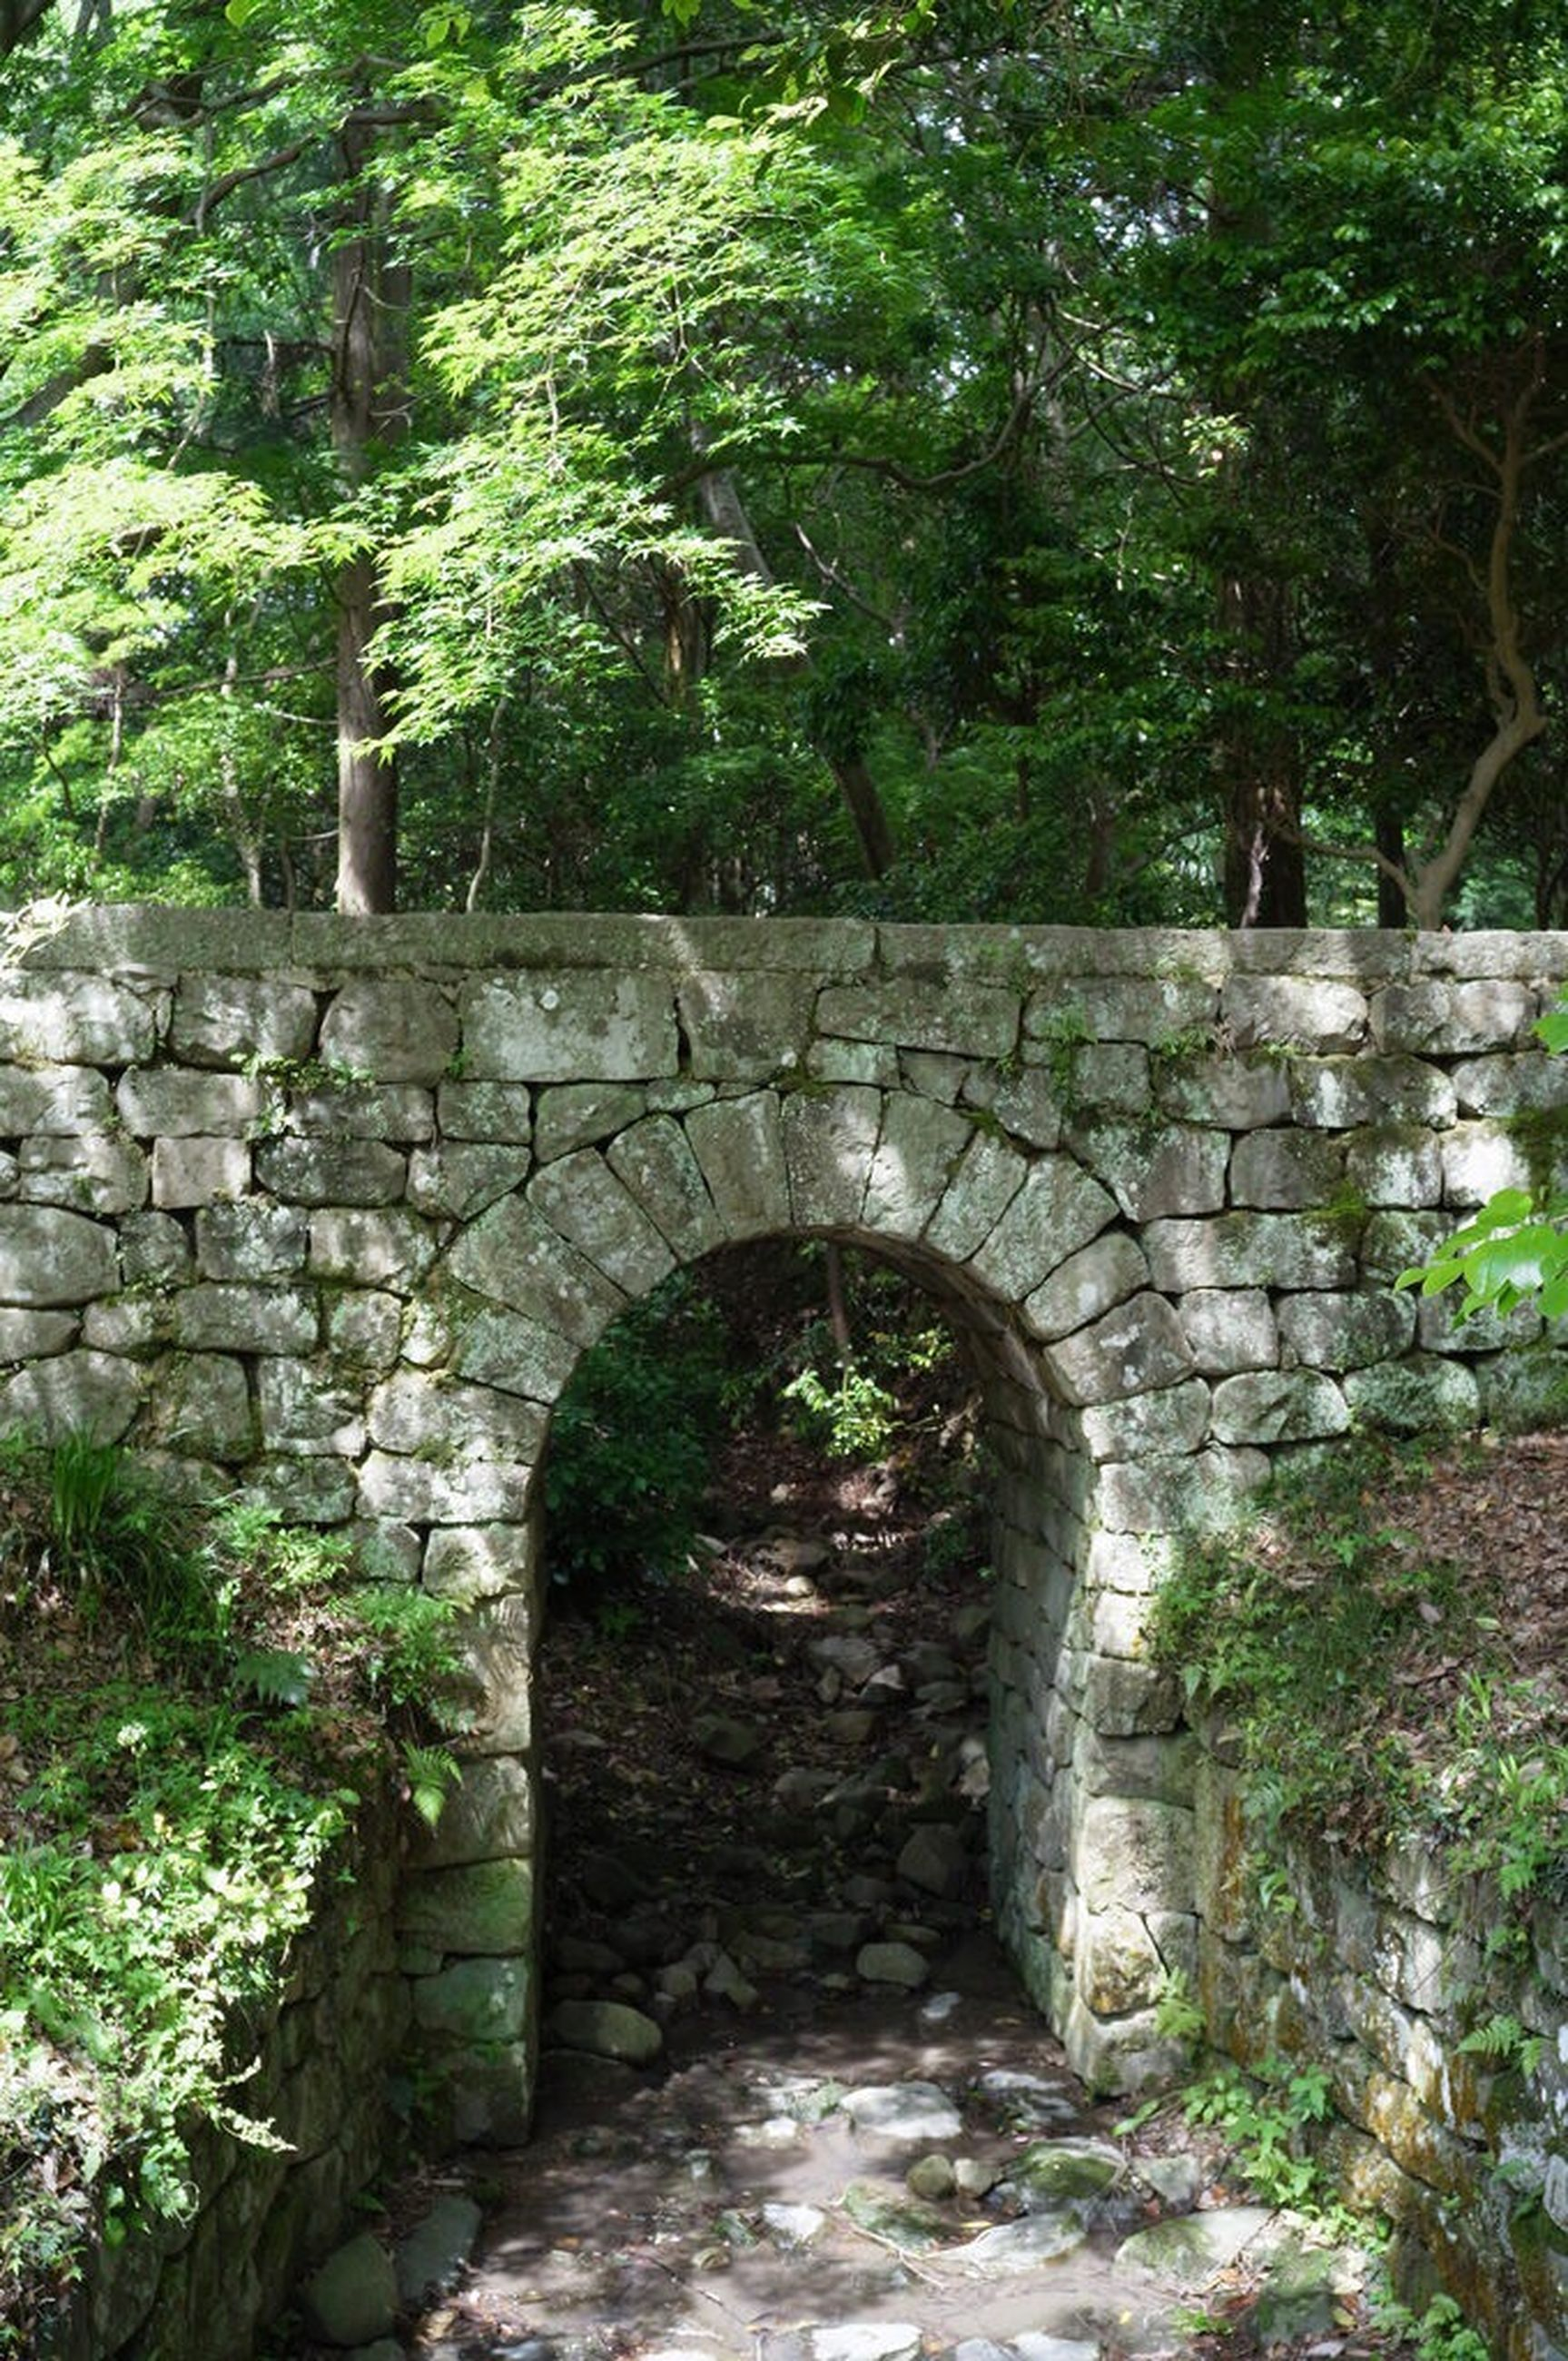 architecture, built structure, arch, stone wall, old, tree, archway, plant, the way forward, wall - building feature, building exterior, abandoned, entrance, brick wall, growth, tunnel, day, steps, wall, no people